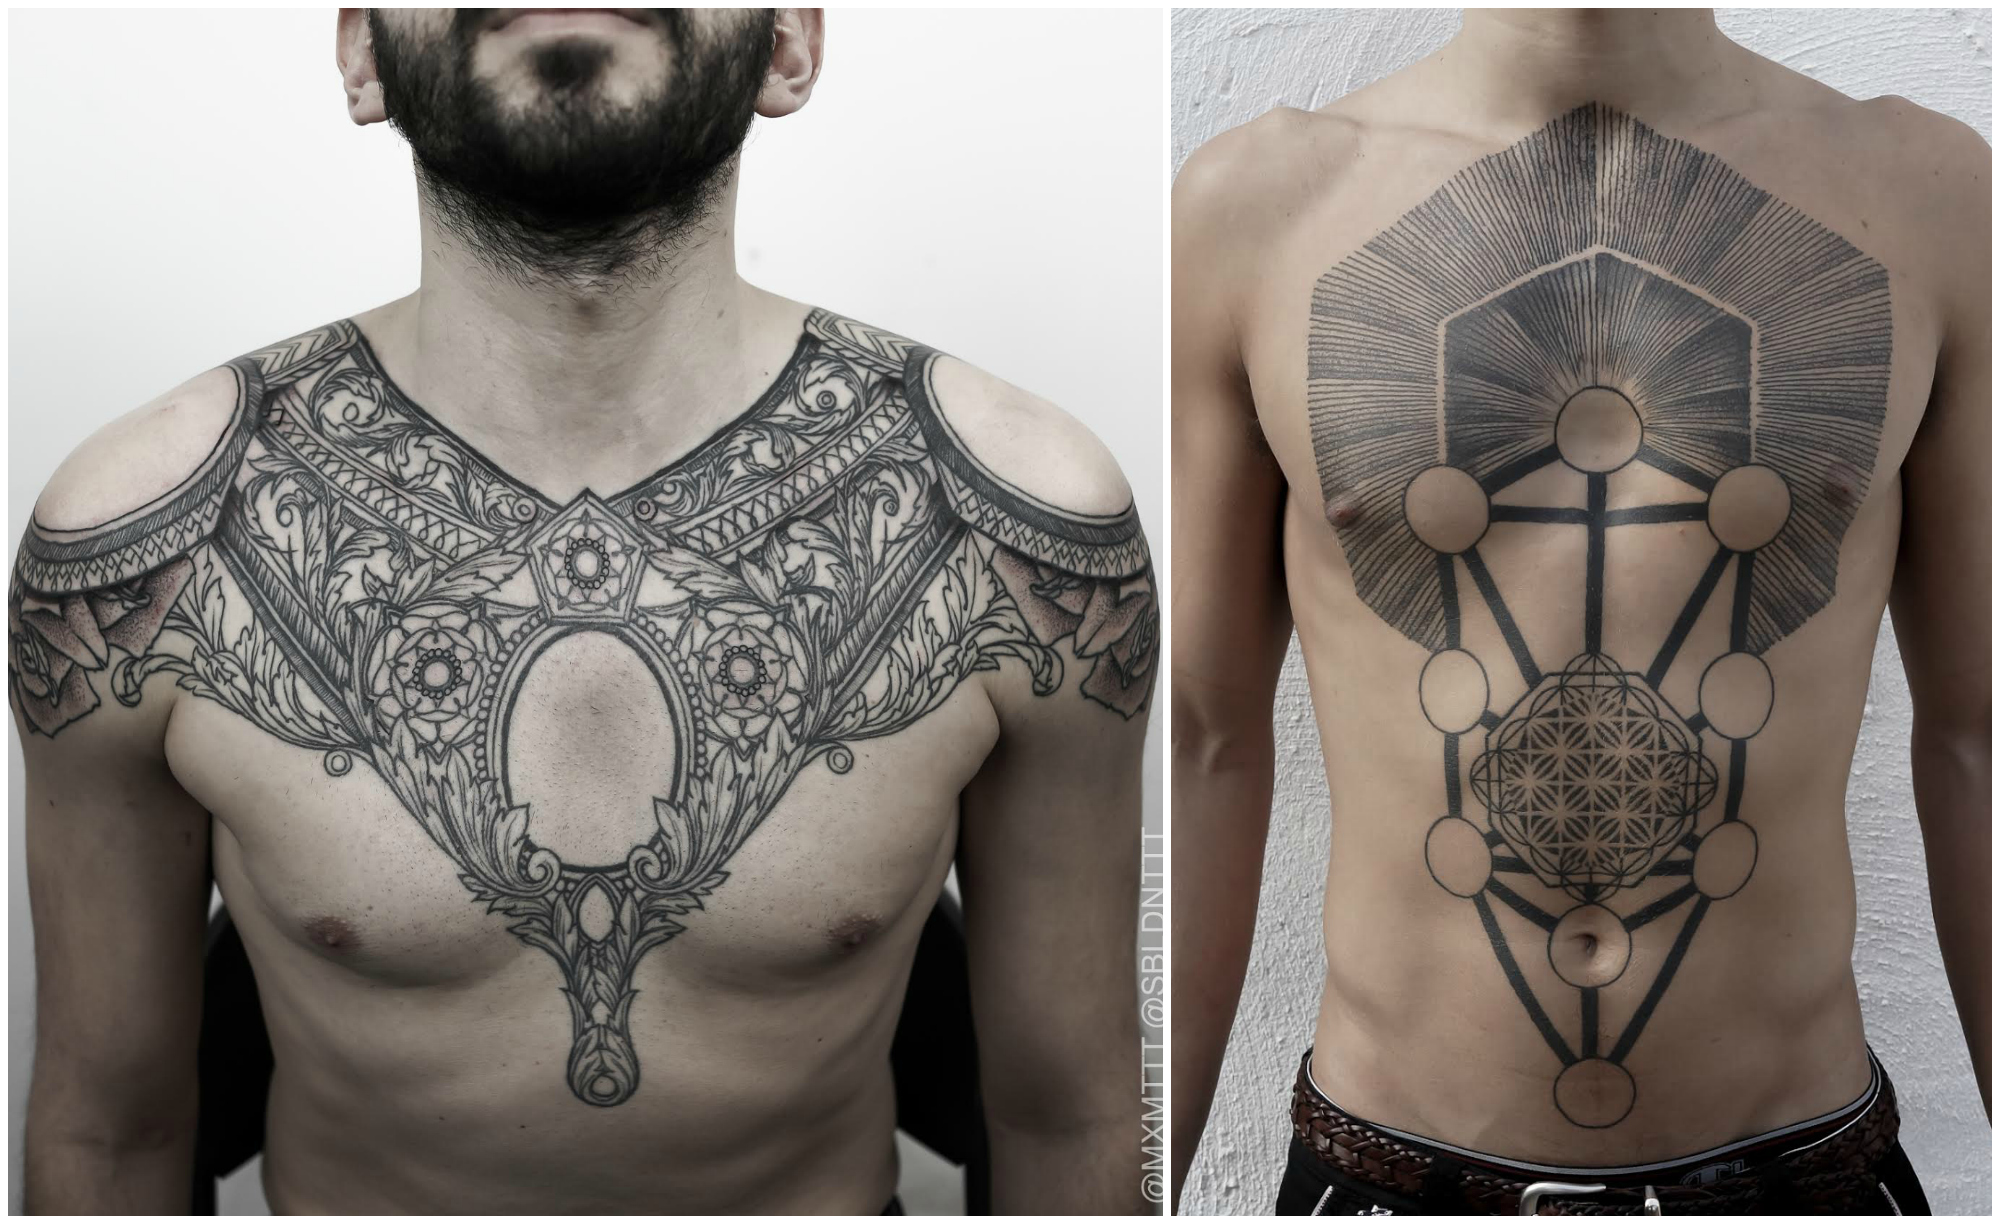 Tattoos by Maxime Buchi